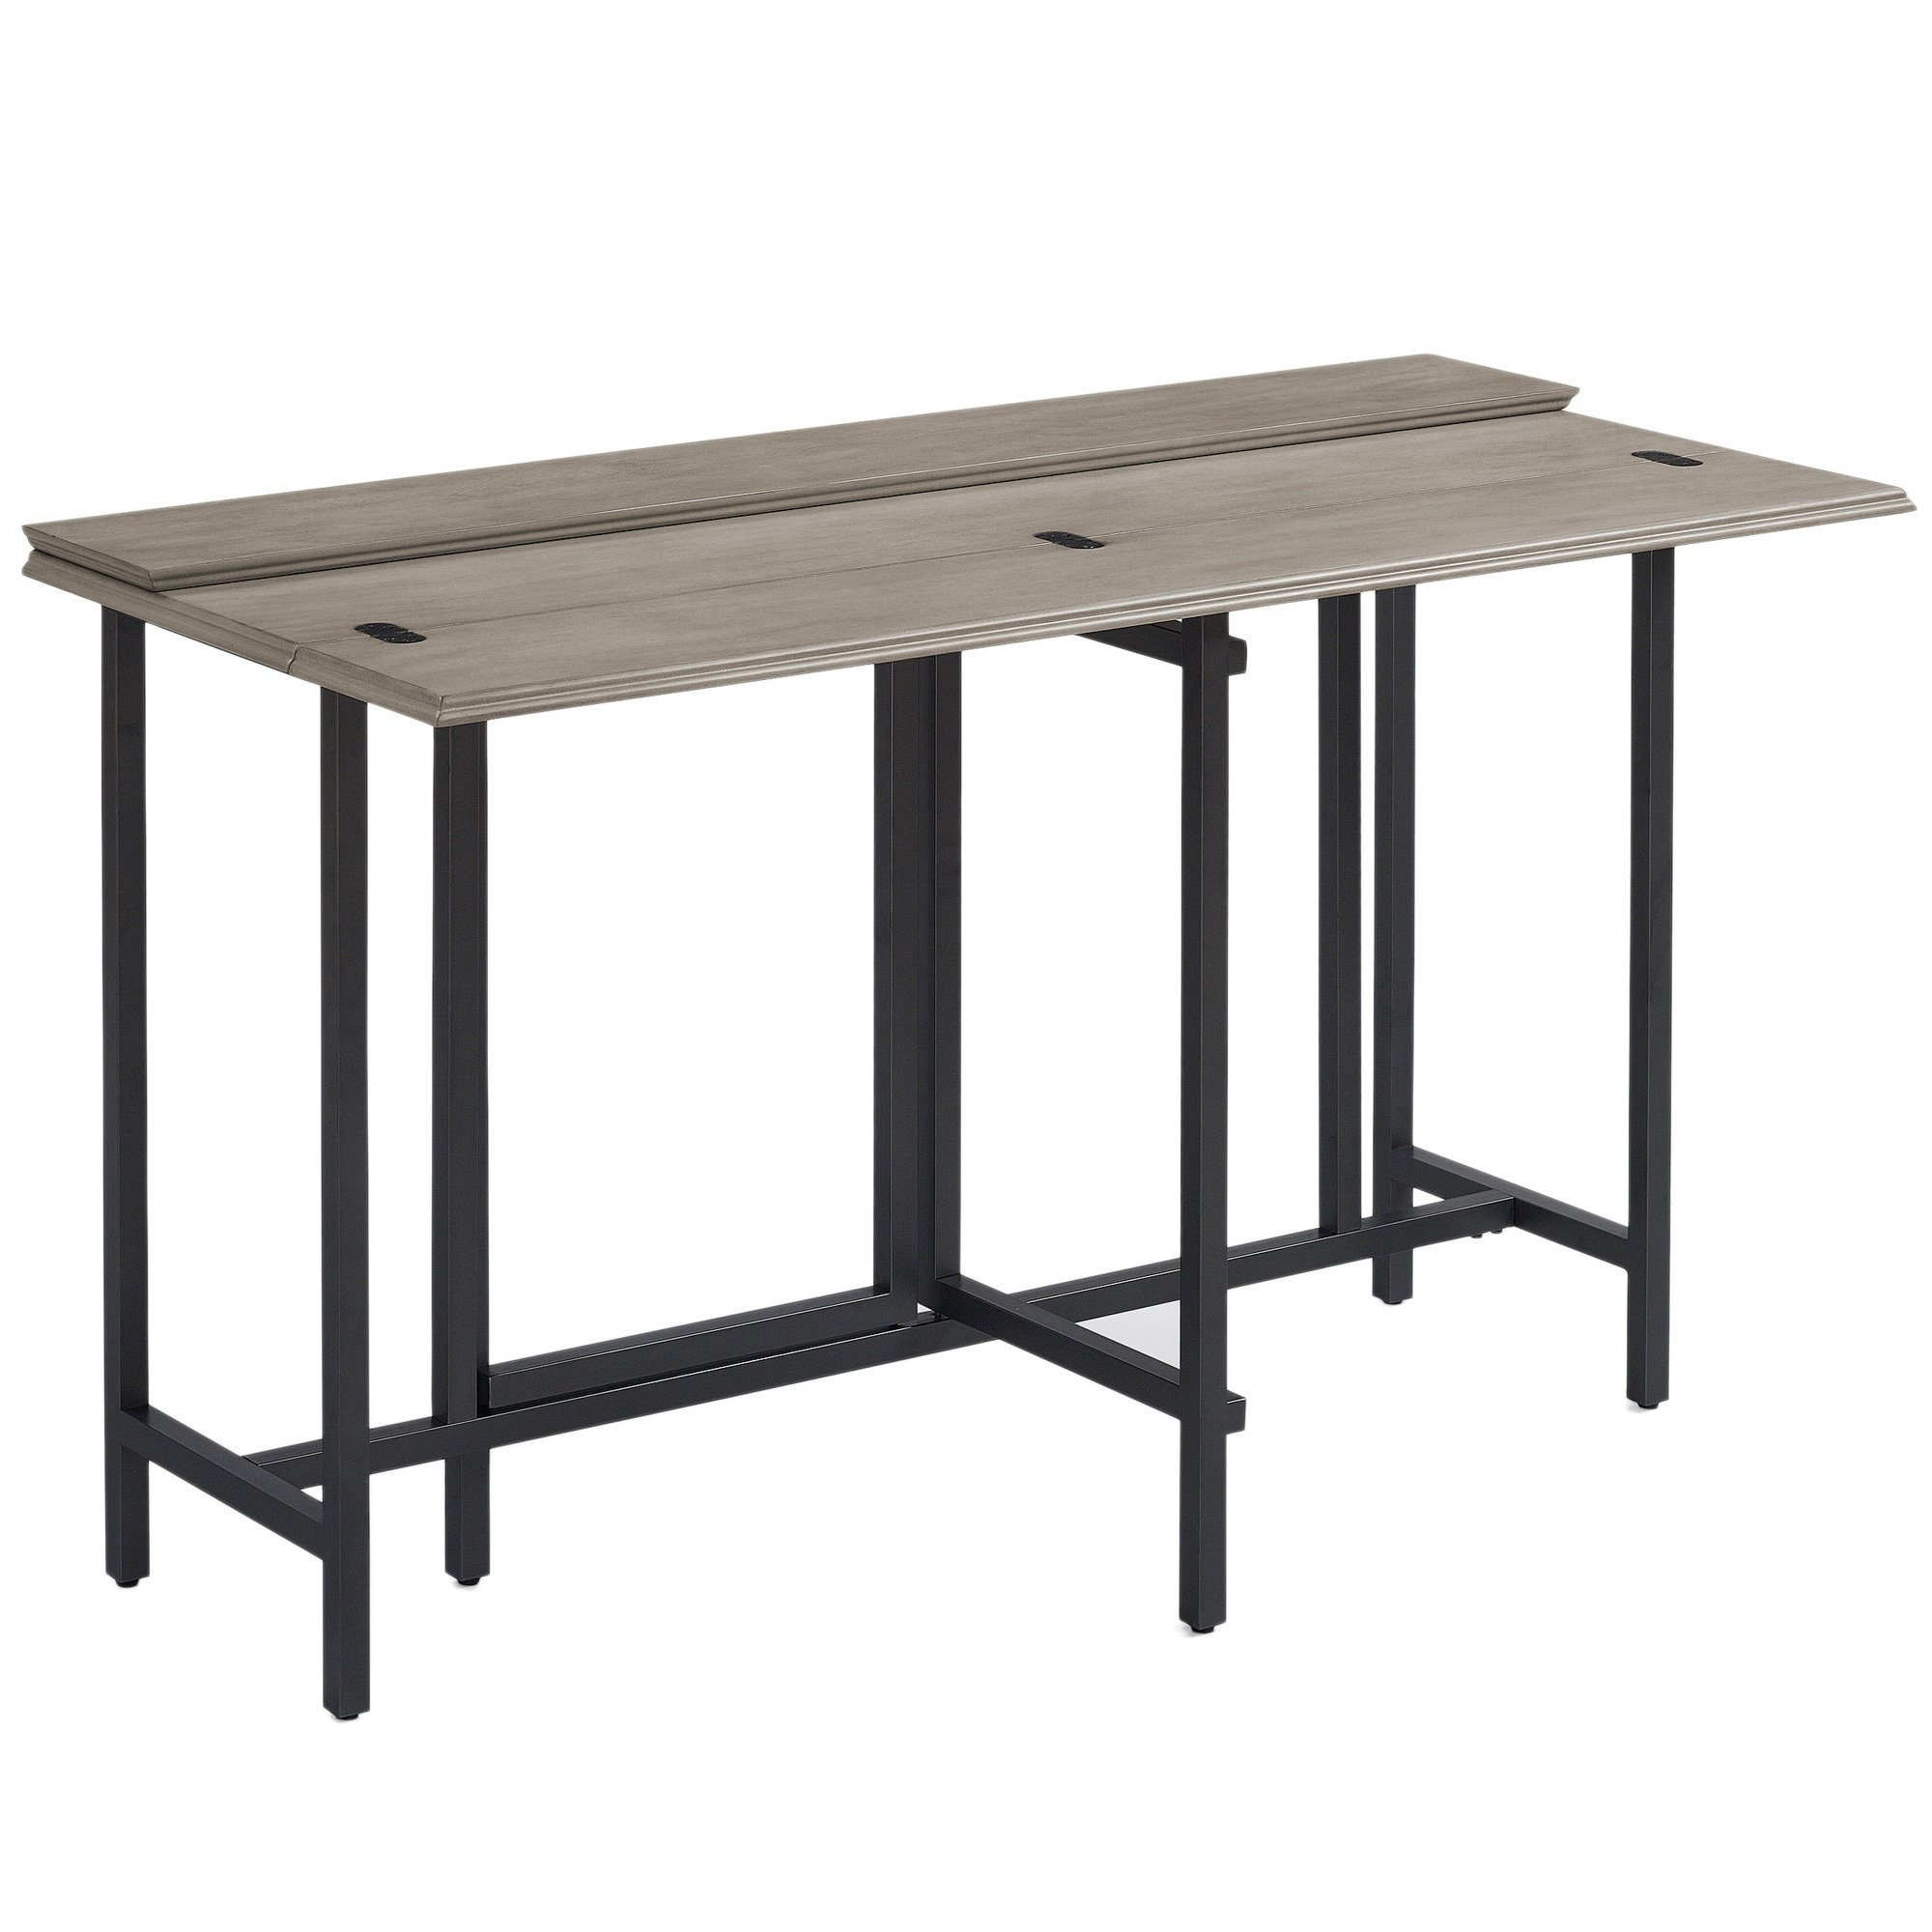 Convertible Dining Table Wood Contemporary Expandable Home Console Kitchen Table